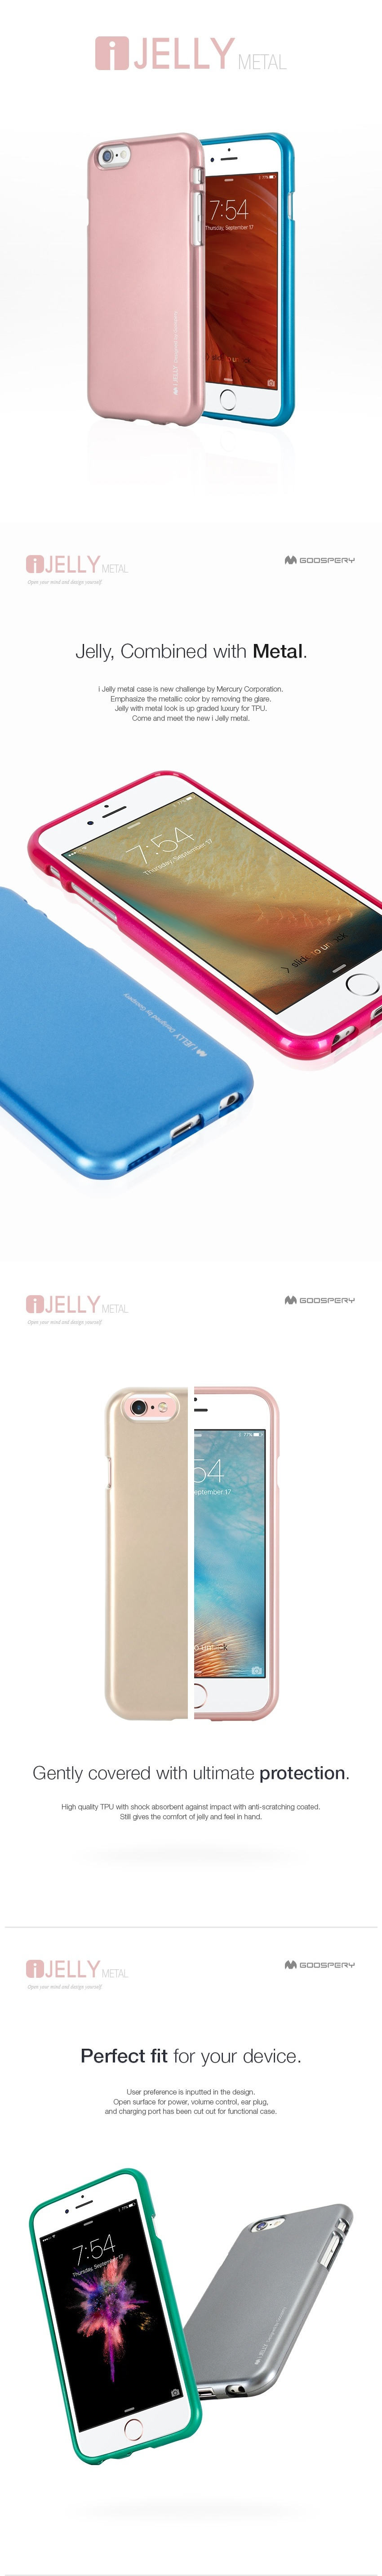 Daftar Harga Goospery Iphone 8 Soft Feeling Jelly Case With Hole Red Pearl All Type Special  Gold Every Need Want Day Blue Moon